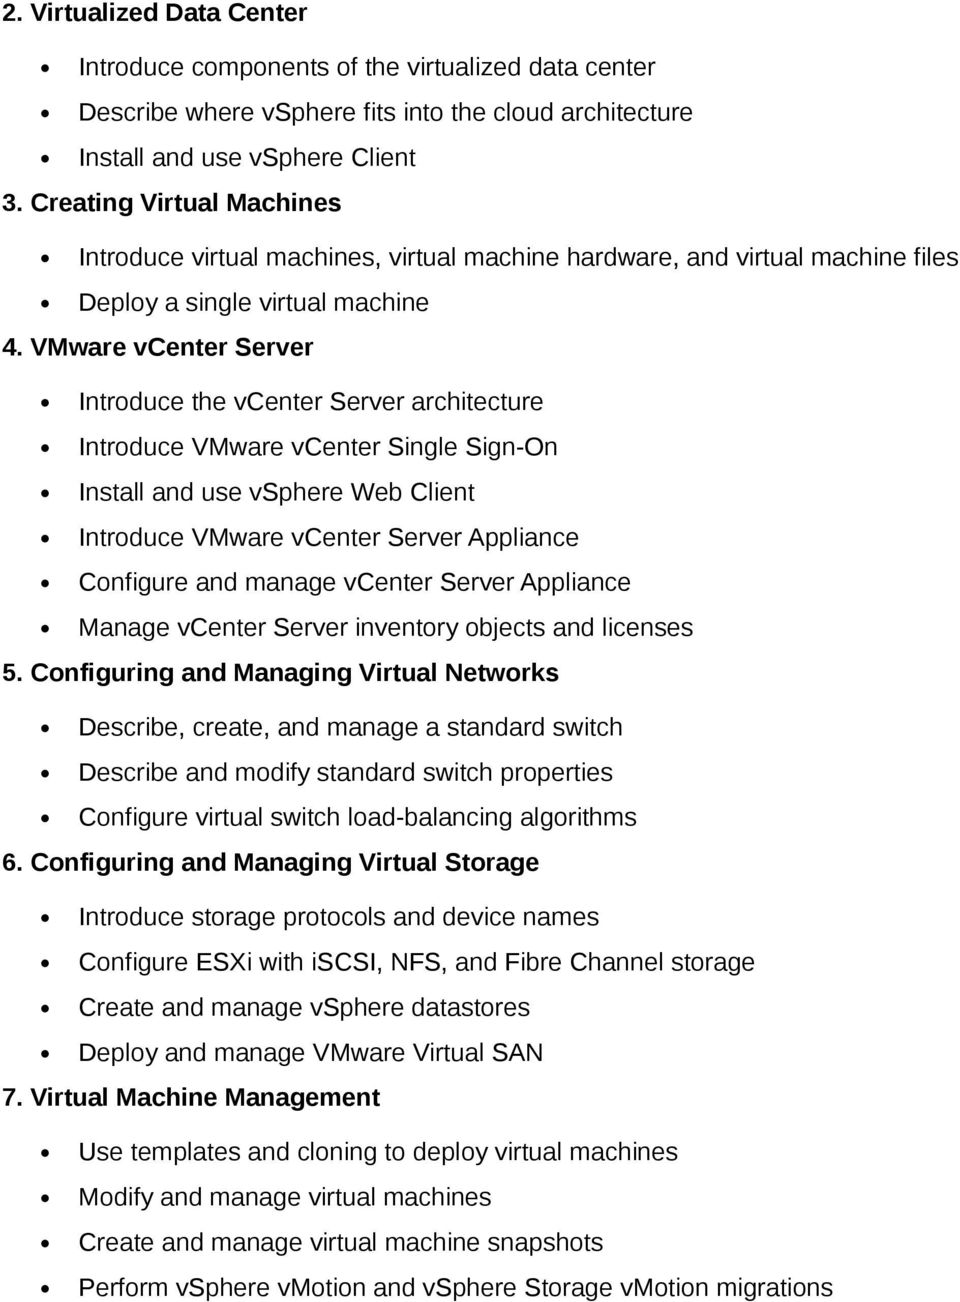 VMware vcenter Server Introduce the vcenter Server architecture Introduce VMware vcenter Single Sign-On Install and use vsphere Web Client Introduce VMware vcenter Server Appliance Configure and